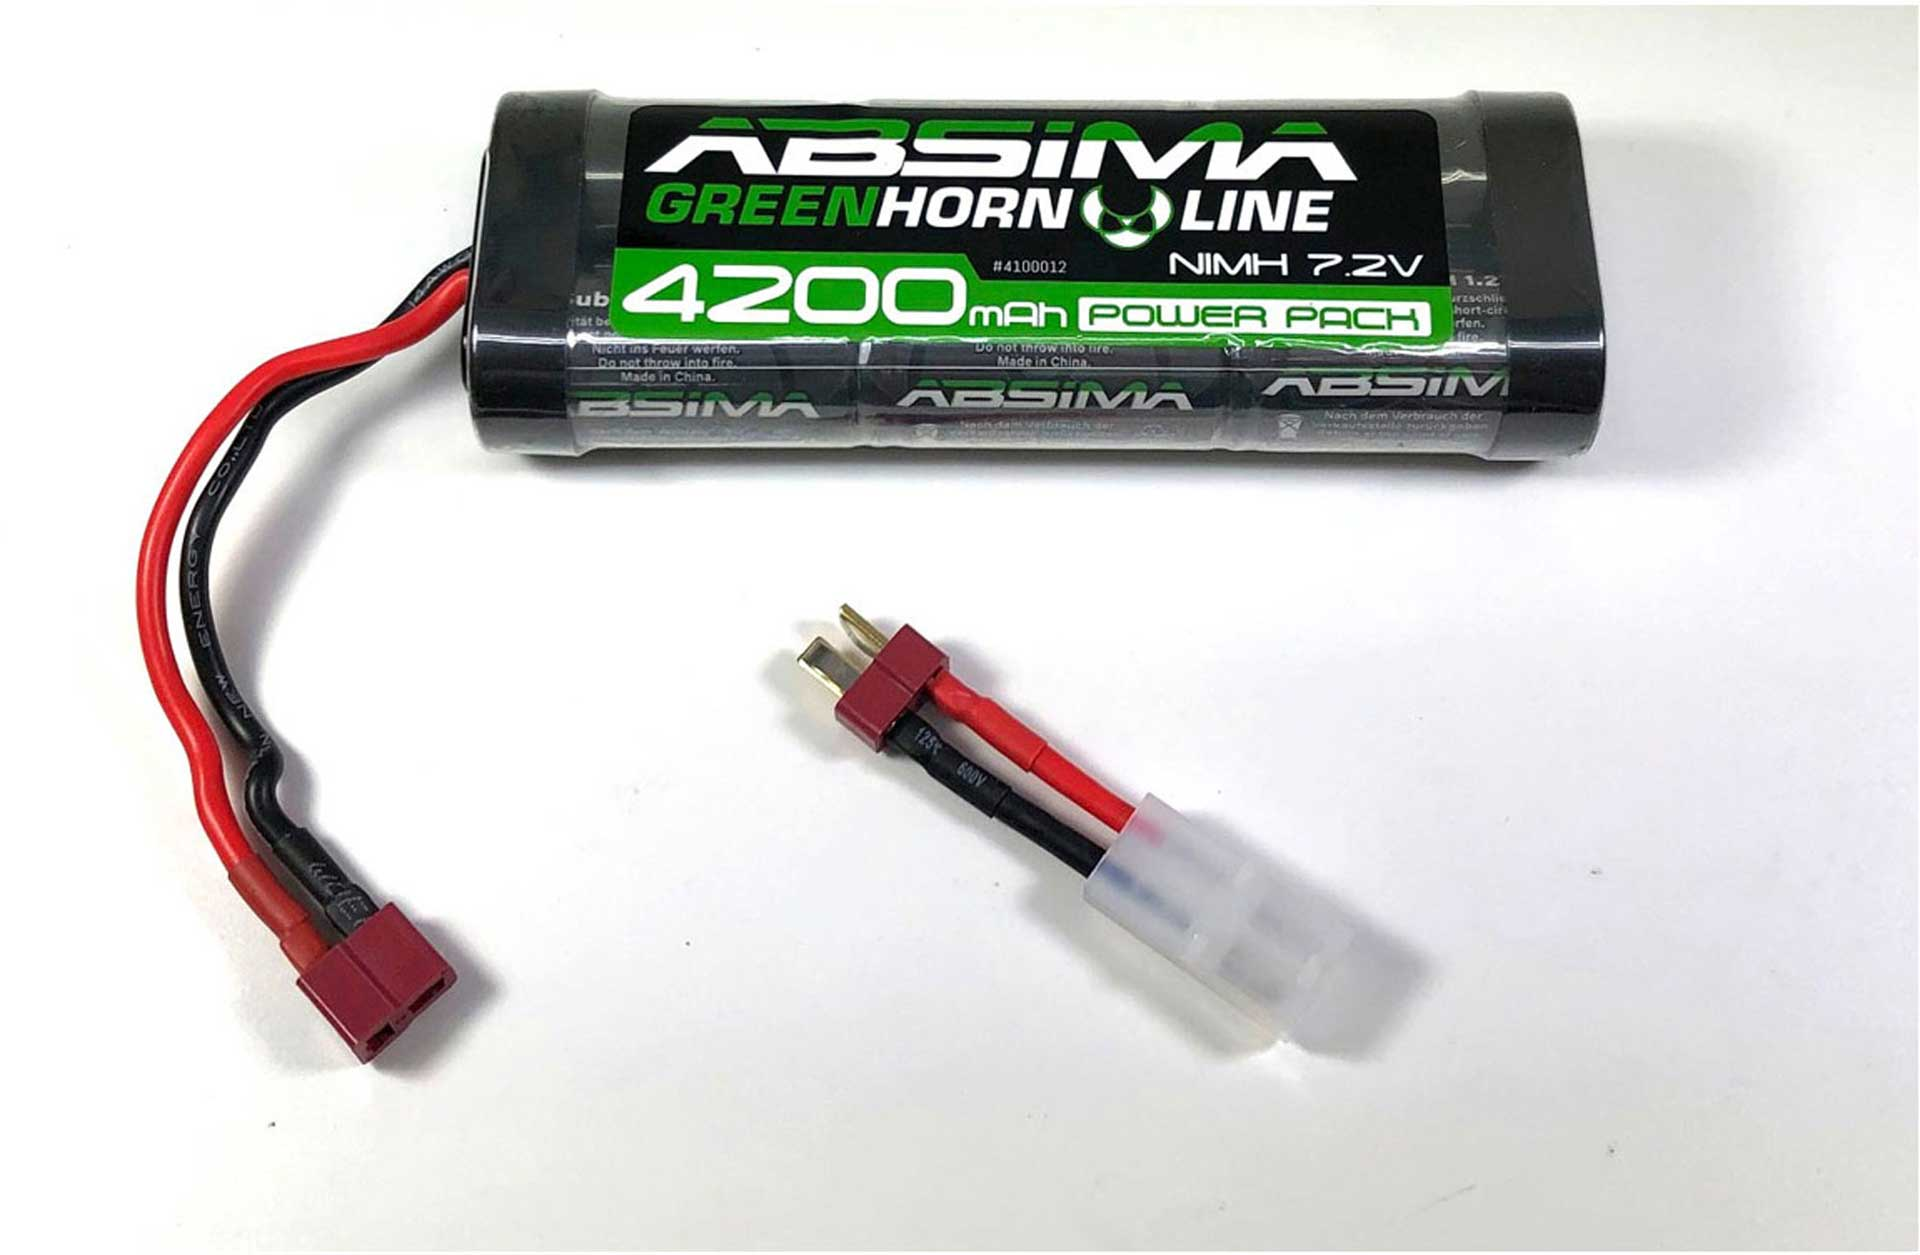 ABSIMA GREENHORN NIMH STICK PACK 7.2V 4200MAH BATTERY WITH T-PLUG CONNECTOR + TAMIYA ADAPTER